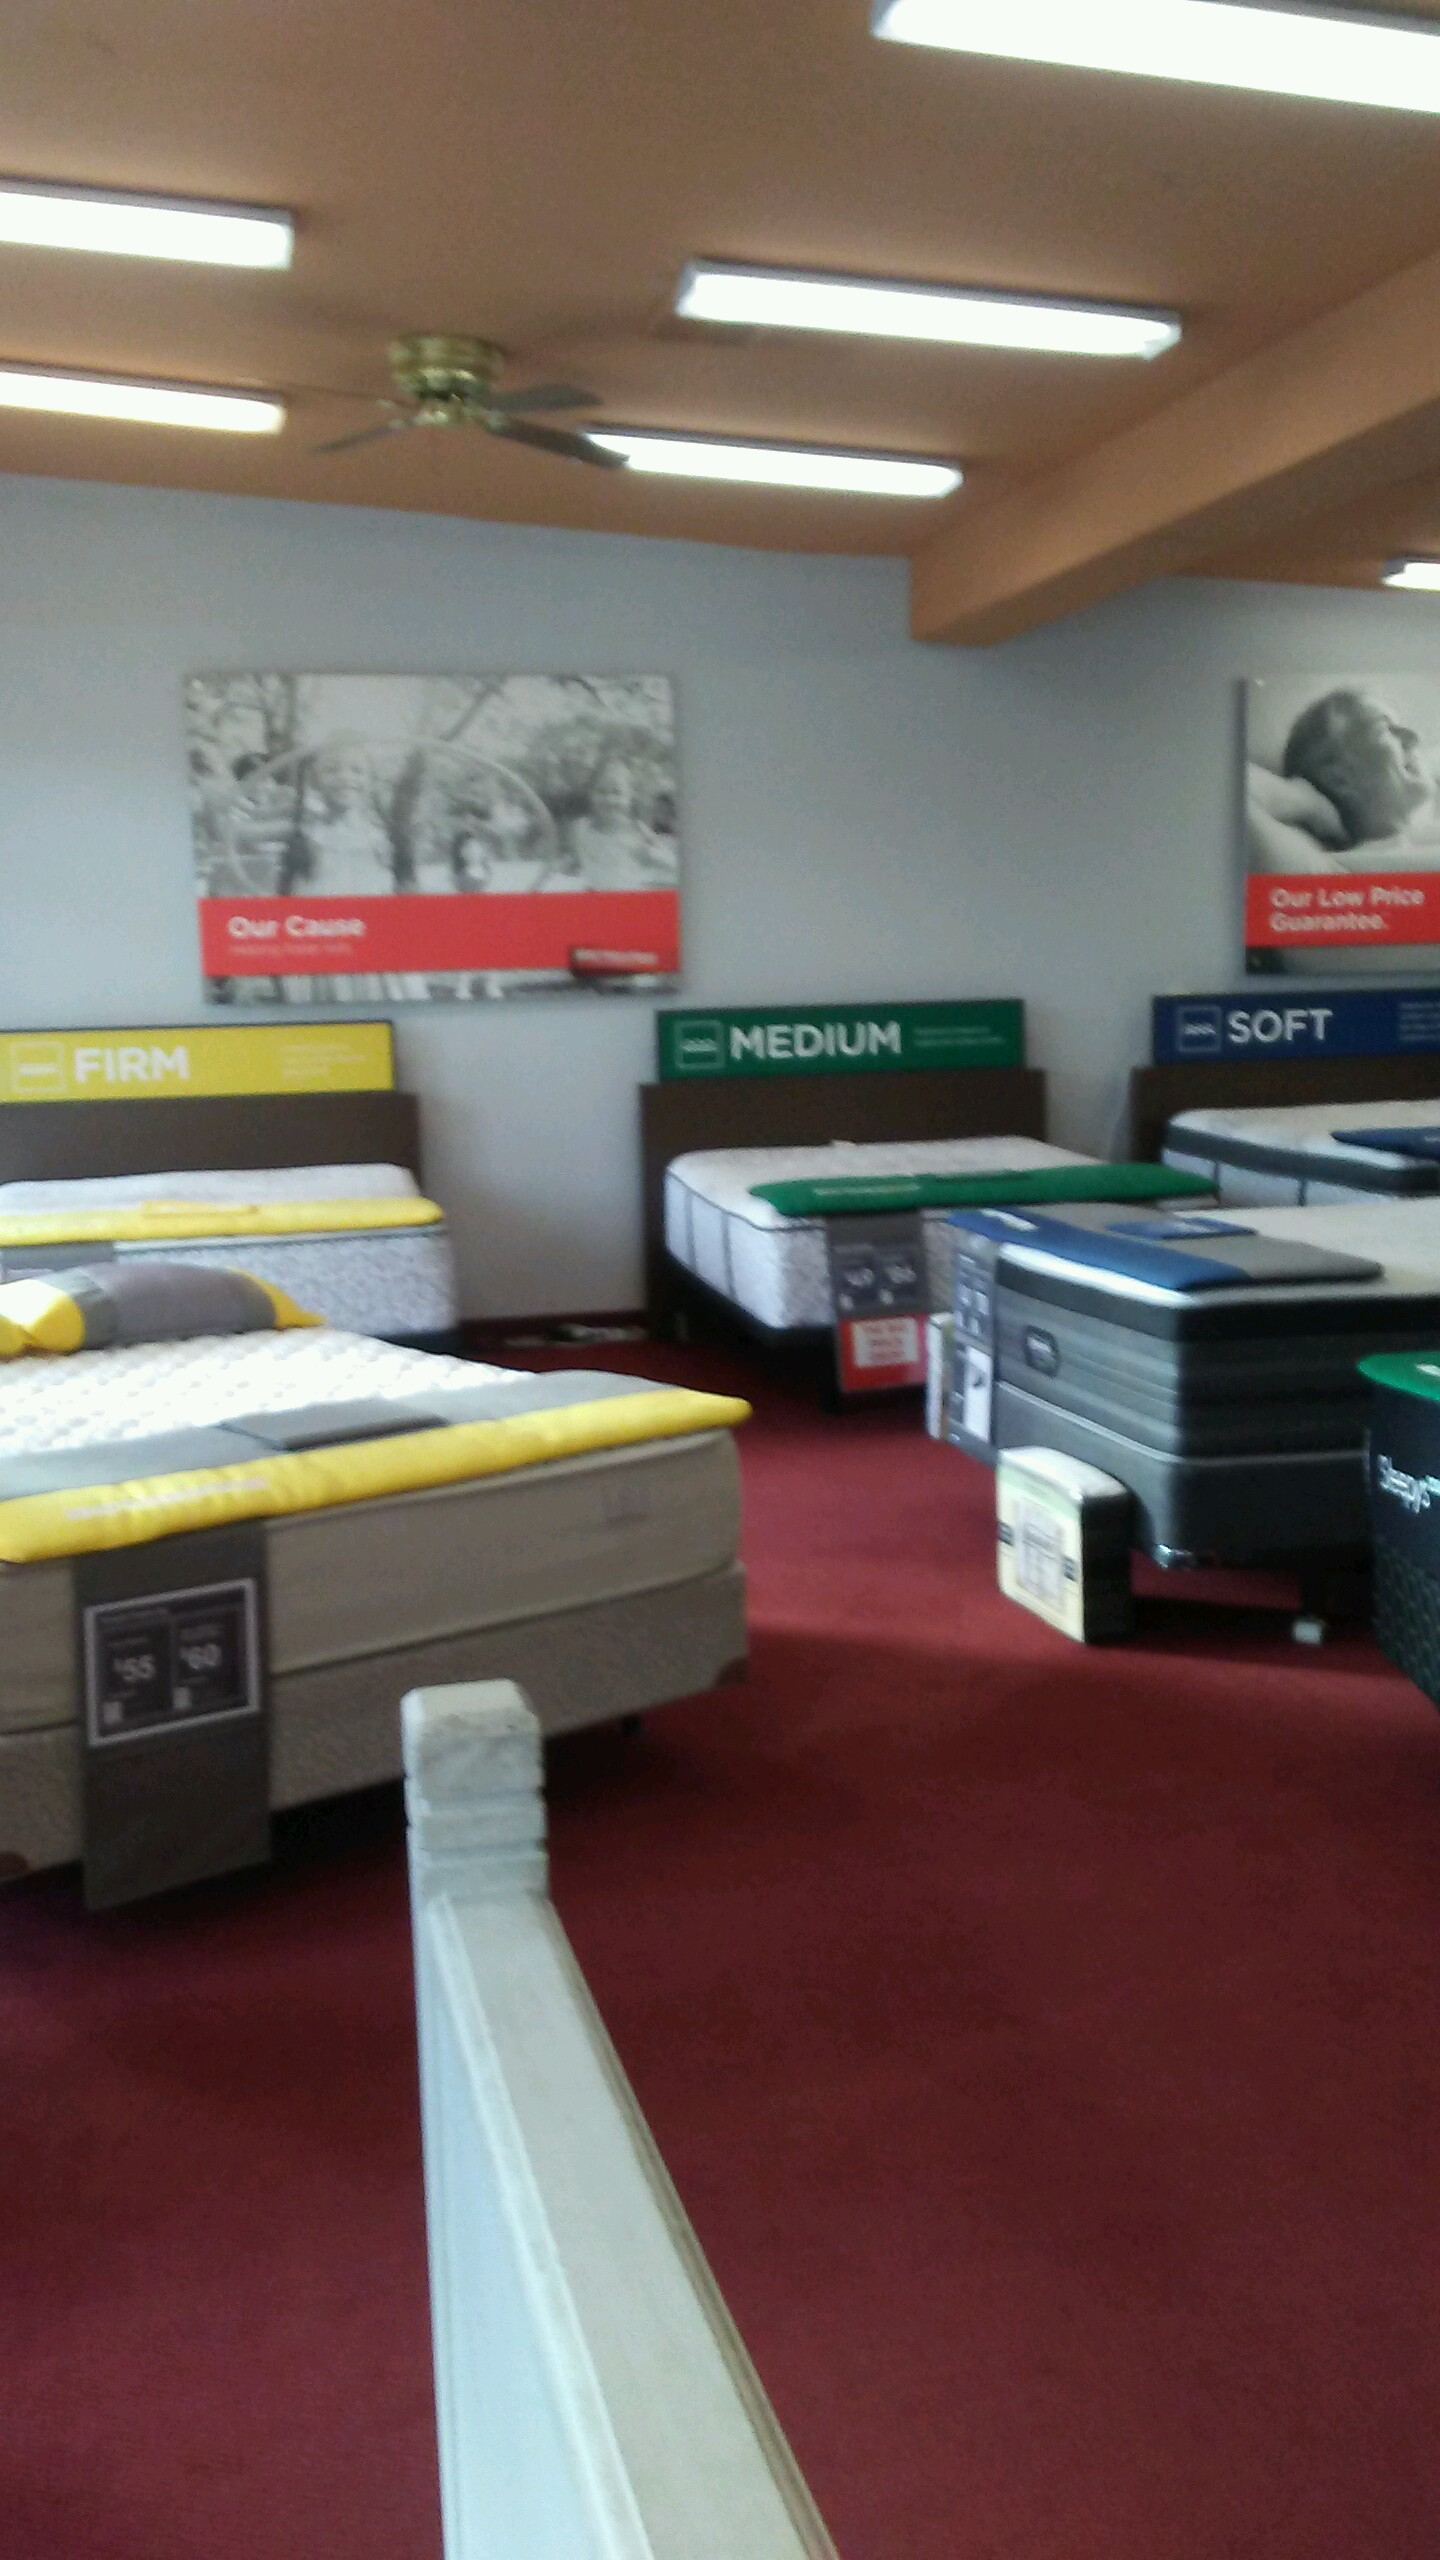 Mattress Firm Whitehall South image 7